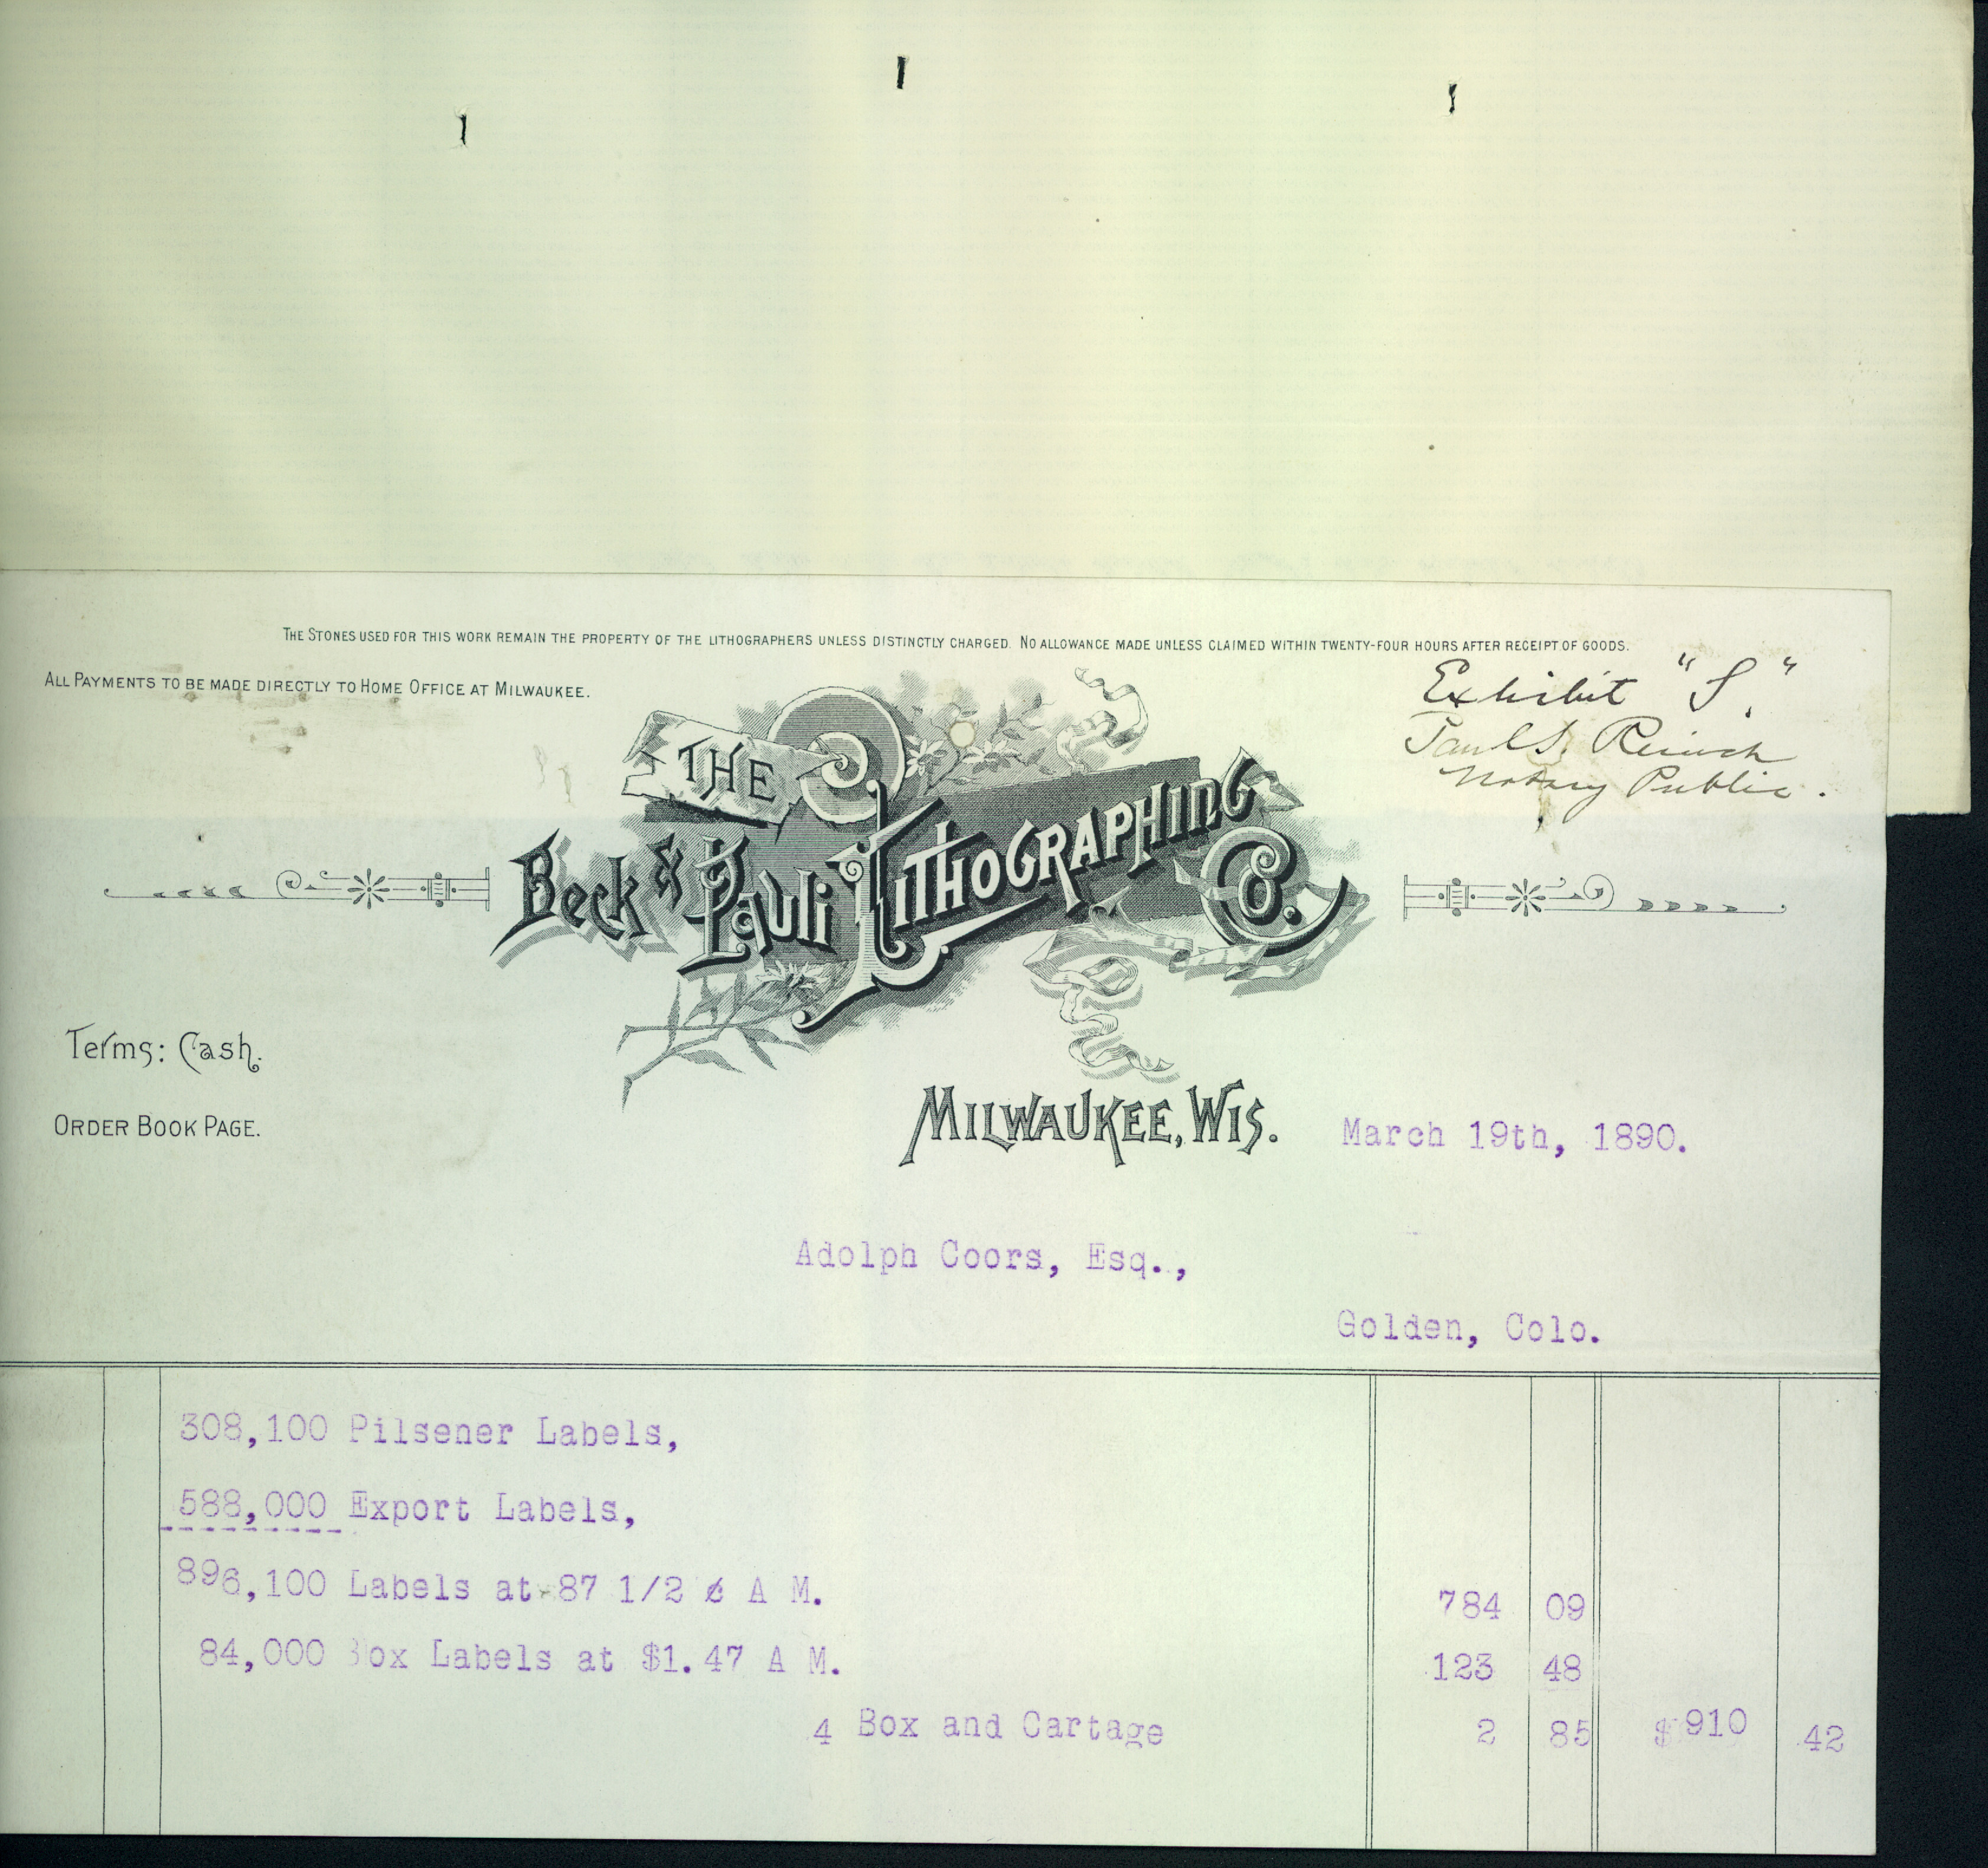 Bill From Beck and Pauli Lithography Company Issued to Adolph Coors